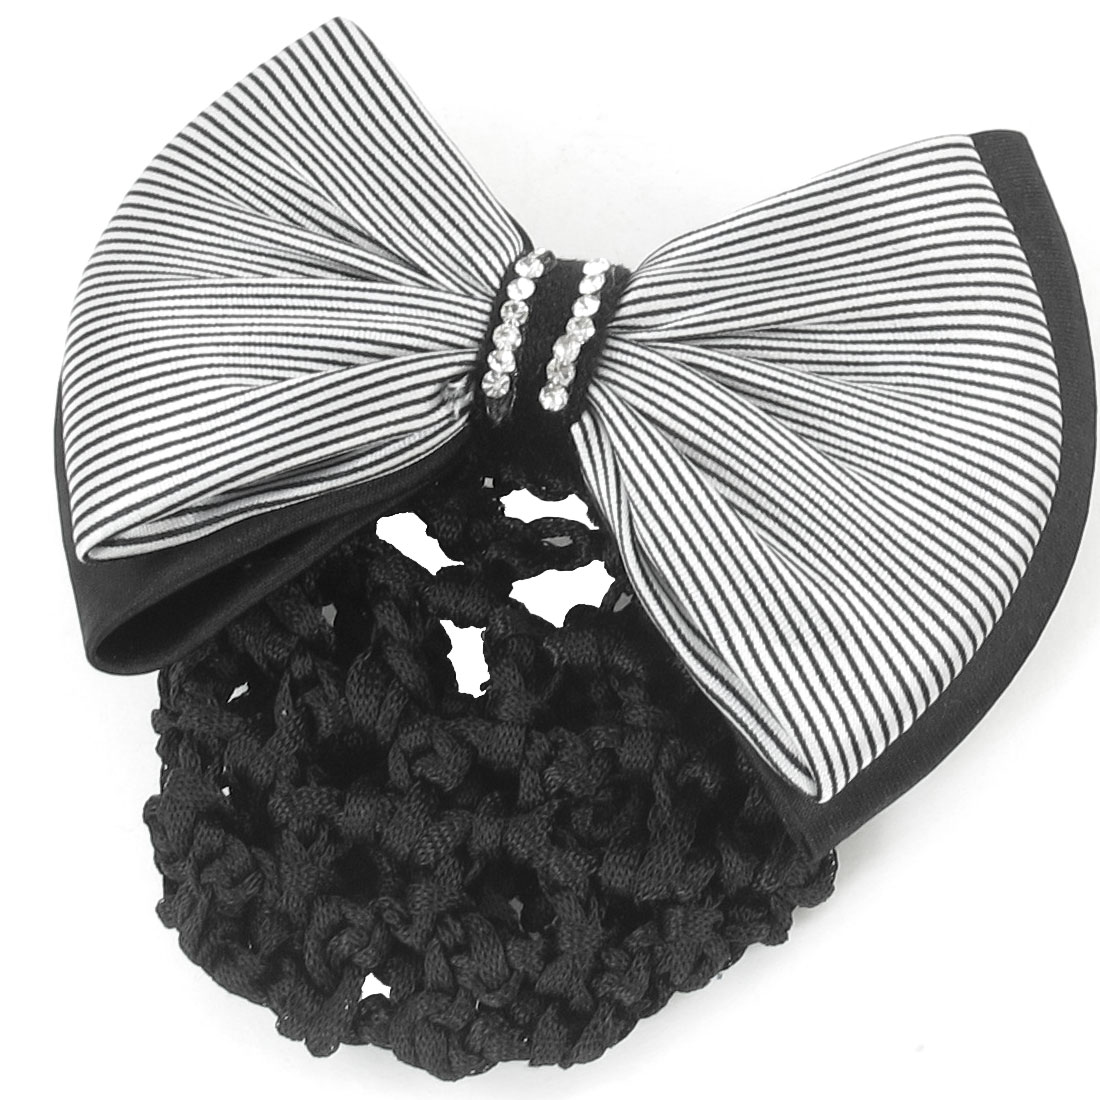 Lady Rhinestone Decor Black White Stripe Print Bowknot Snood Net Barrette French Hair Clip